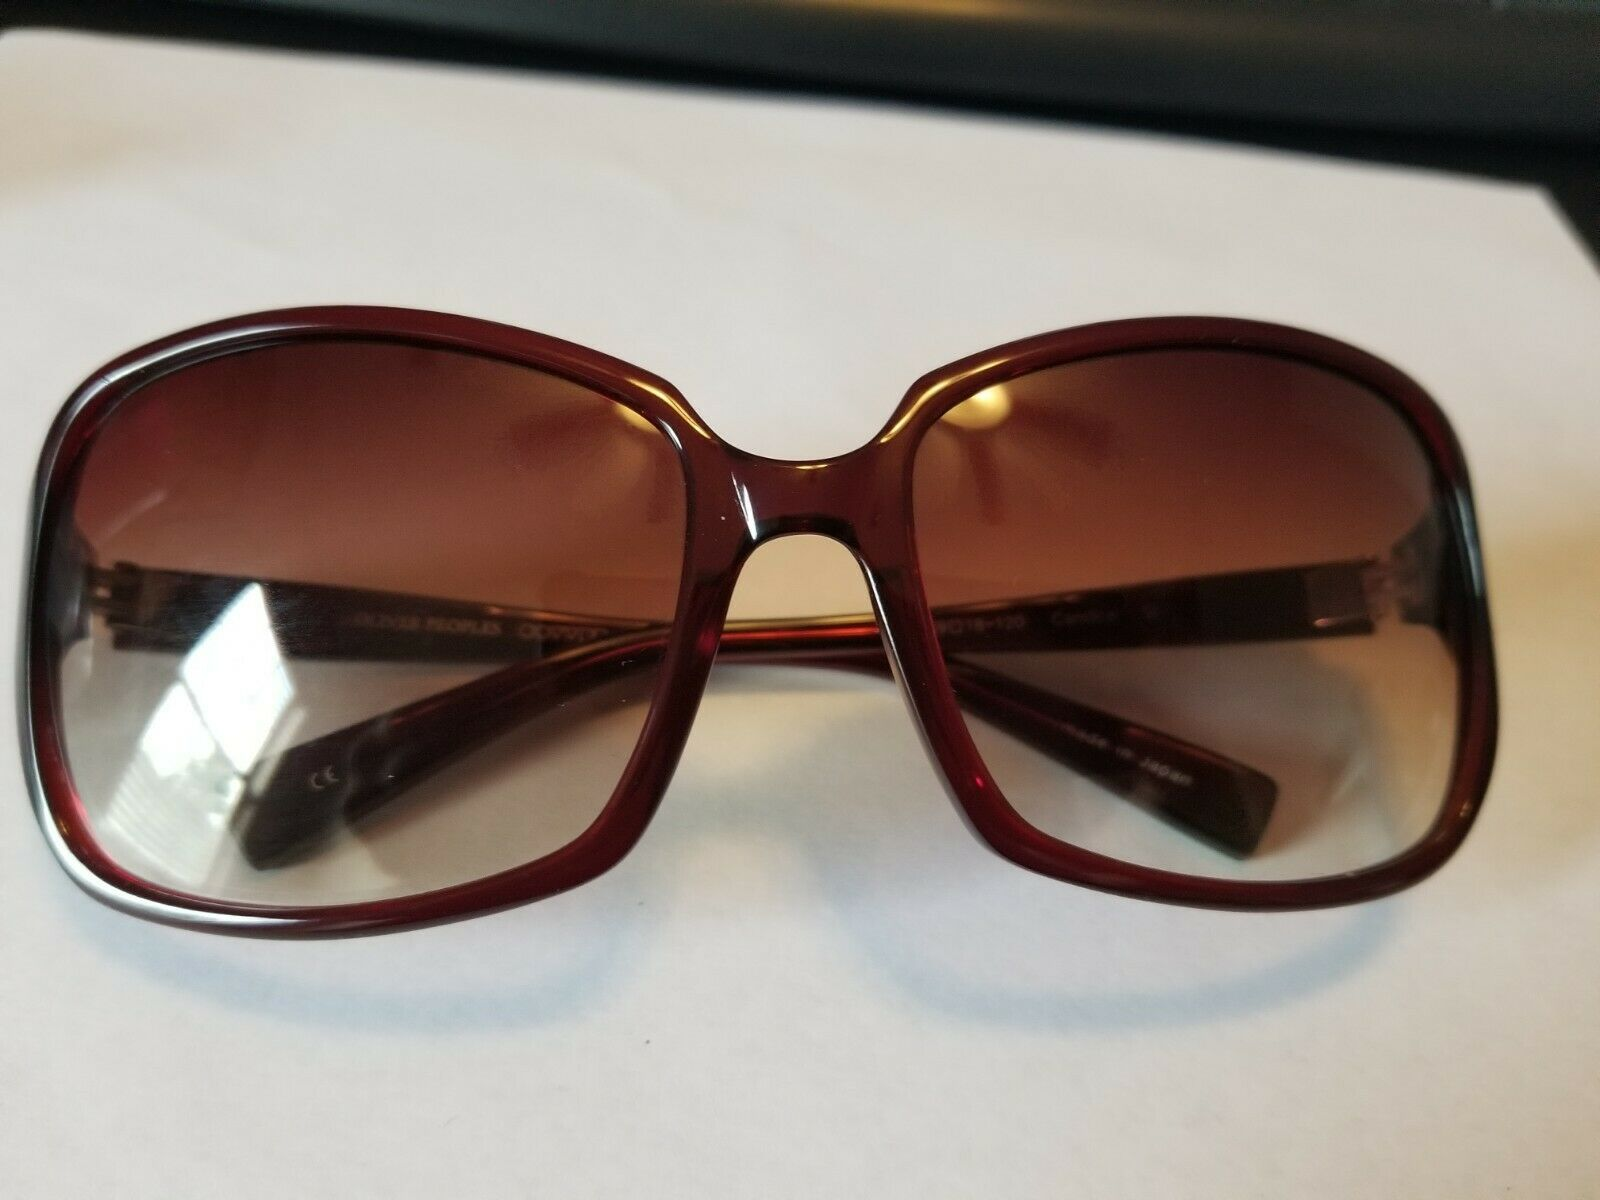 OLIVER PEOPLES Candice SI Sunglasses Glossy Transparent Dark Burgundy Red ..NEW image 4